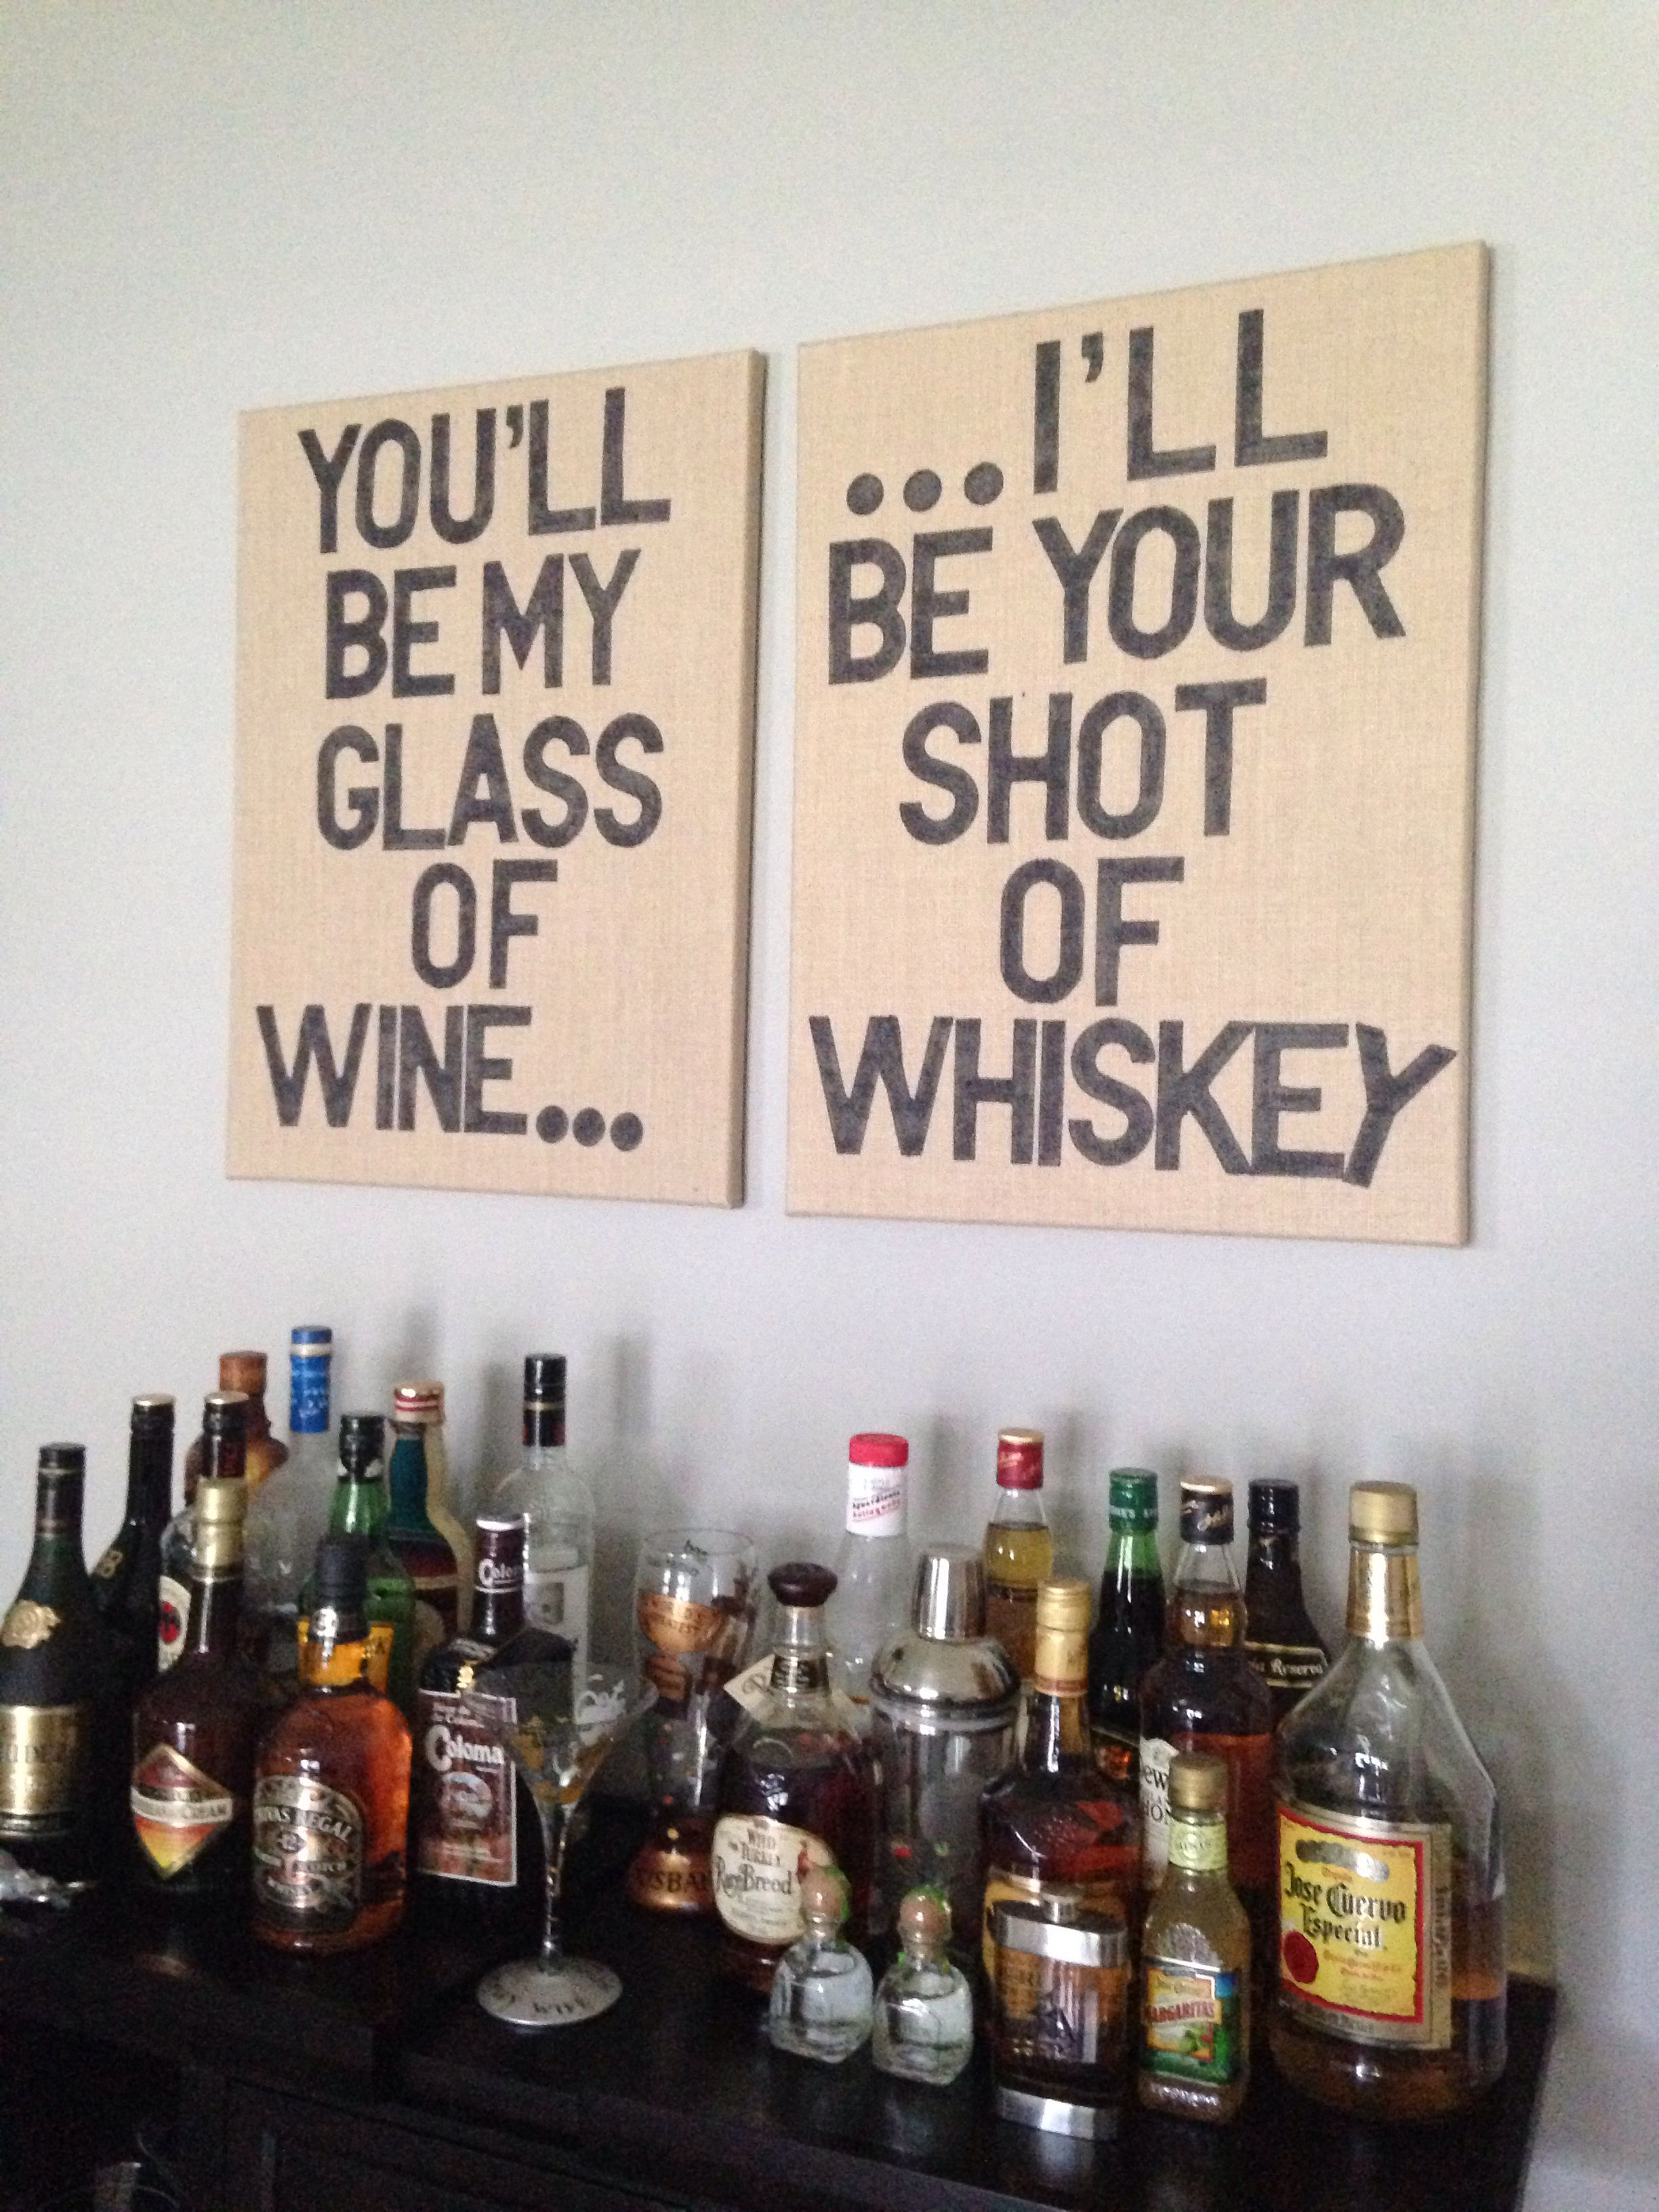 Youll Be My Glass Of Wine Ill Be Your Shot Of Whiskey Honeybee